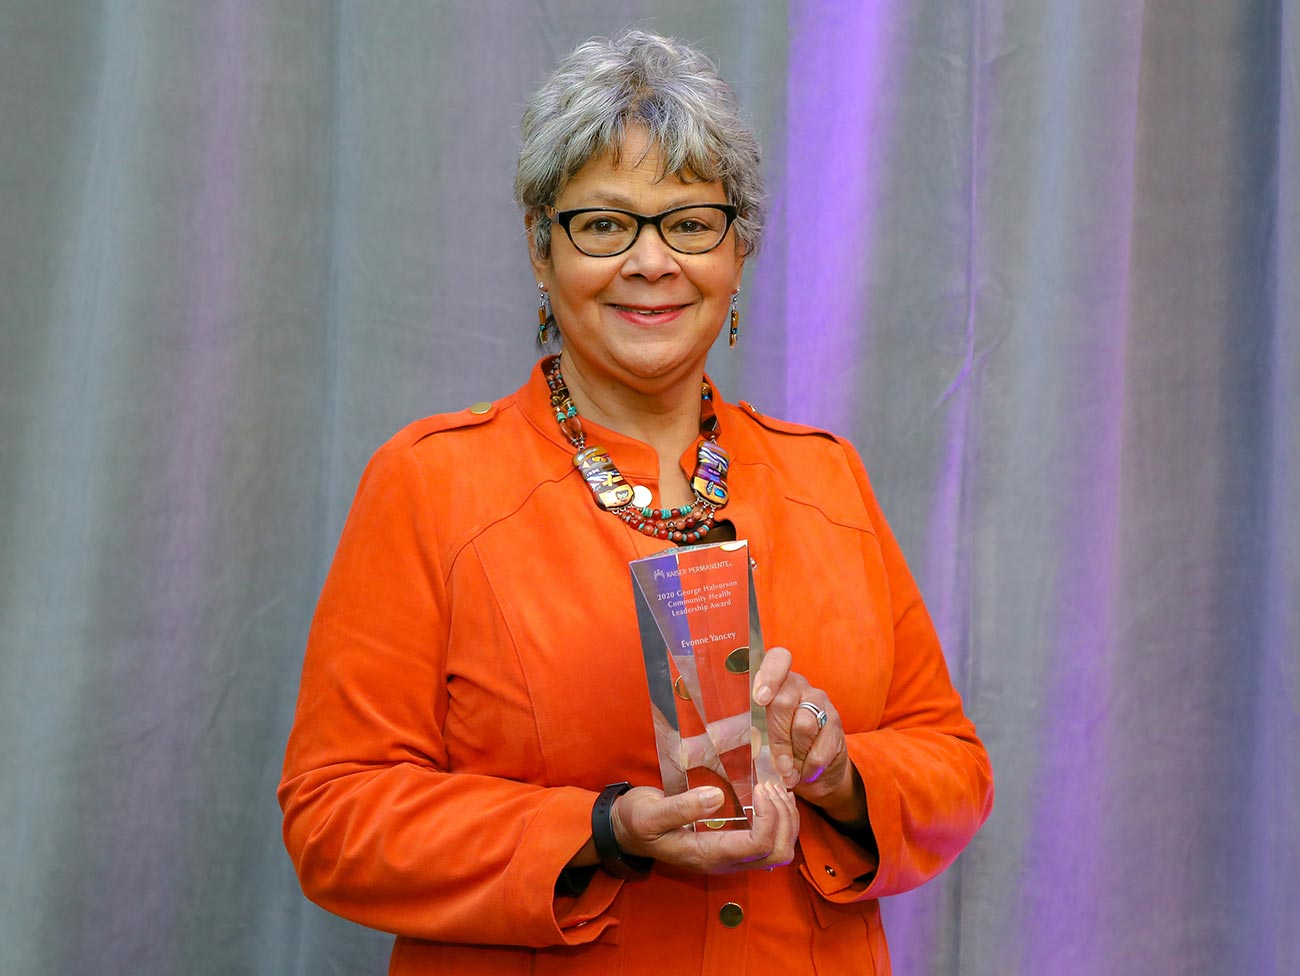 Evonne Yancey holding the Halvorson award trophy